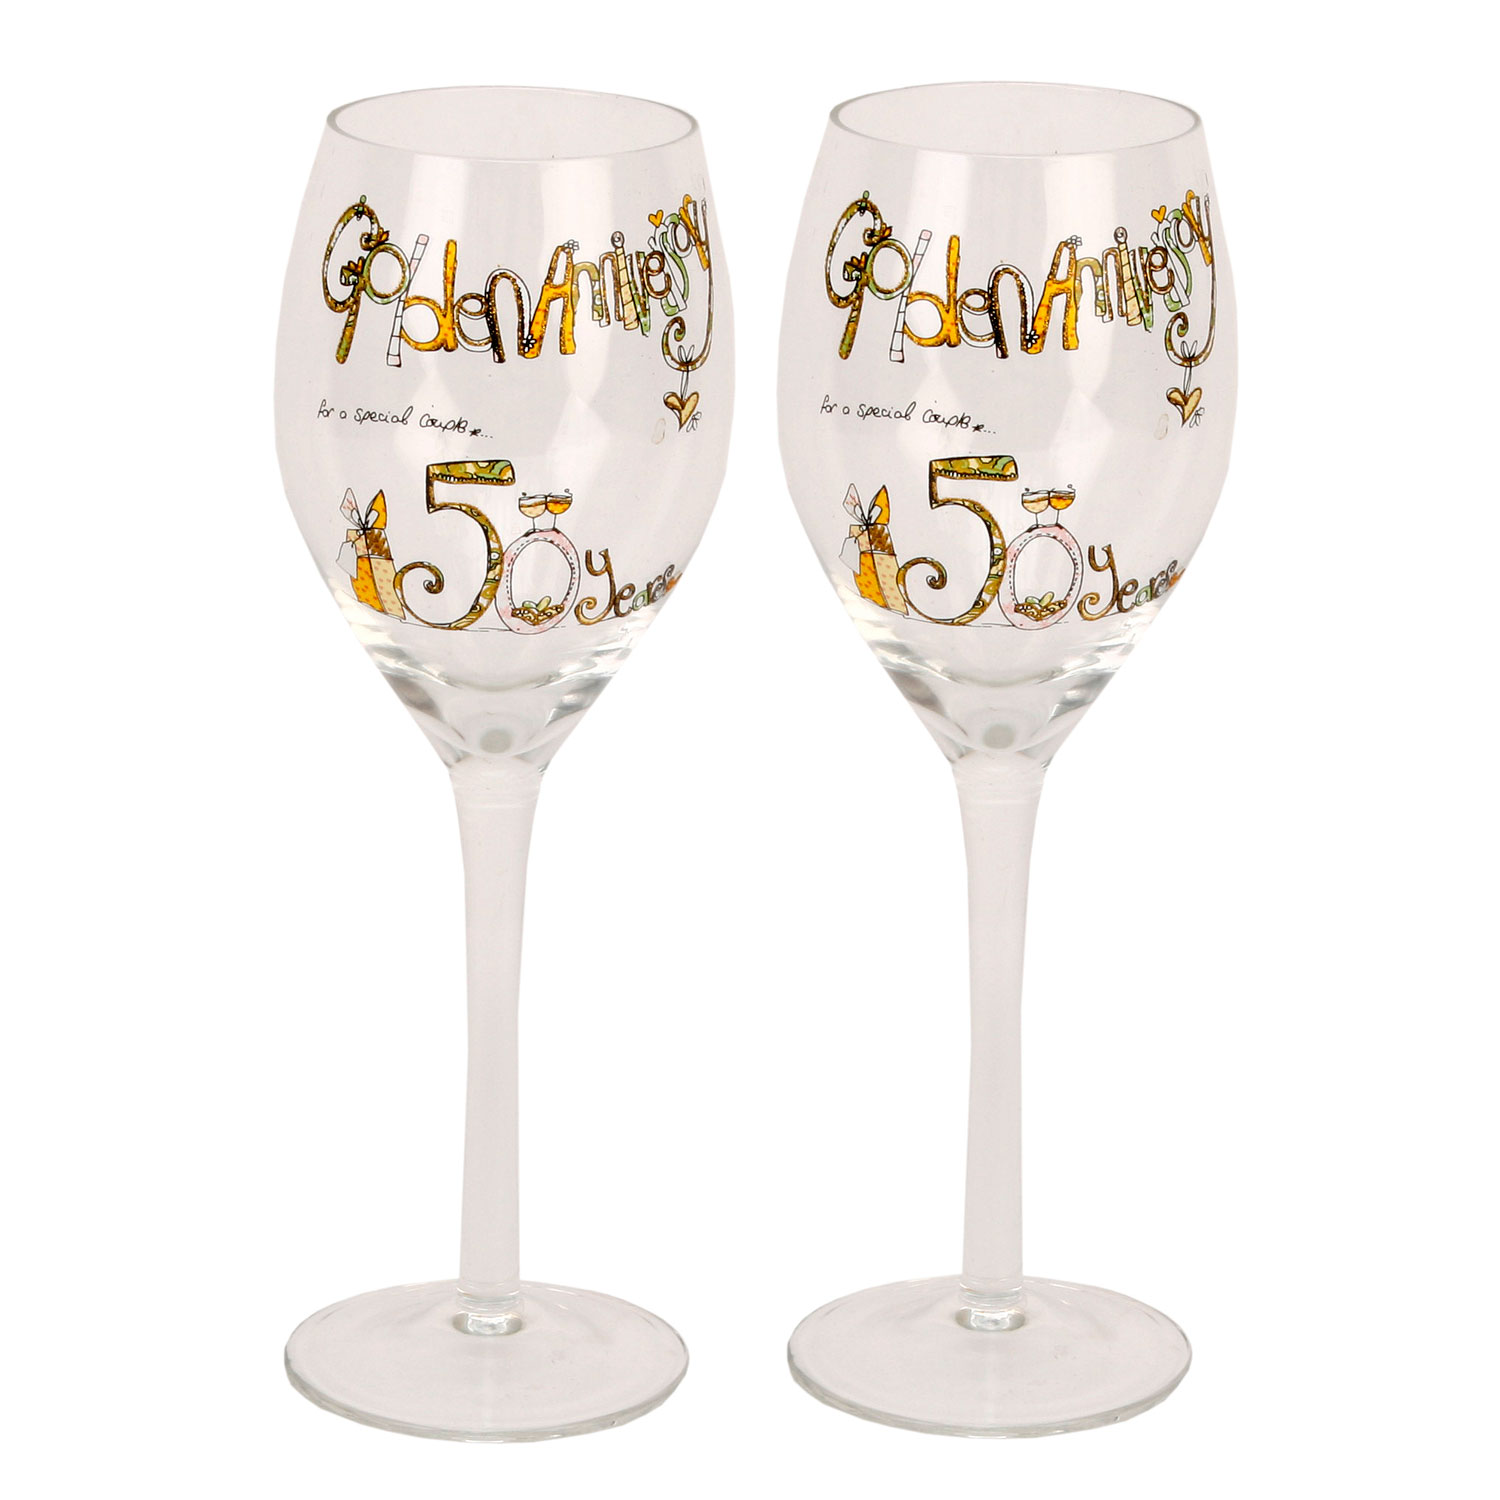 Tracey Russell Decorative Wine Glasses 50th Gold Anniversary Gift Set Glass